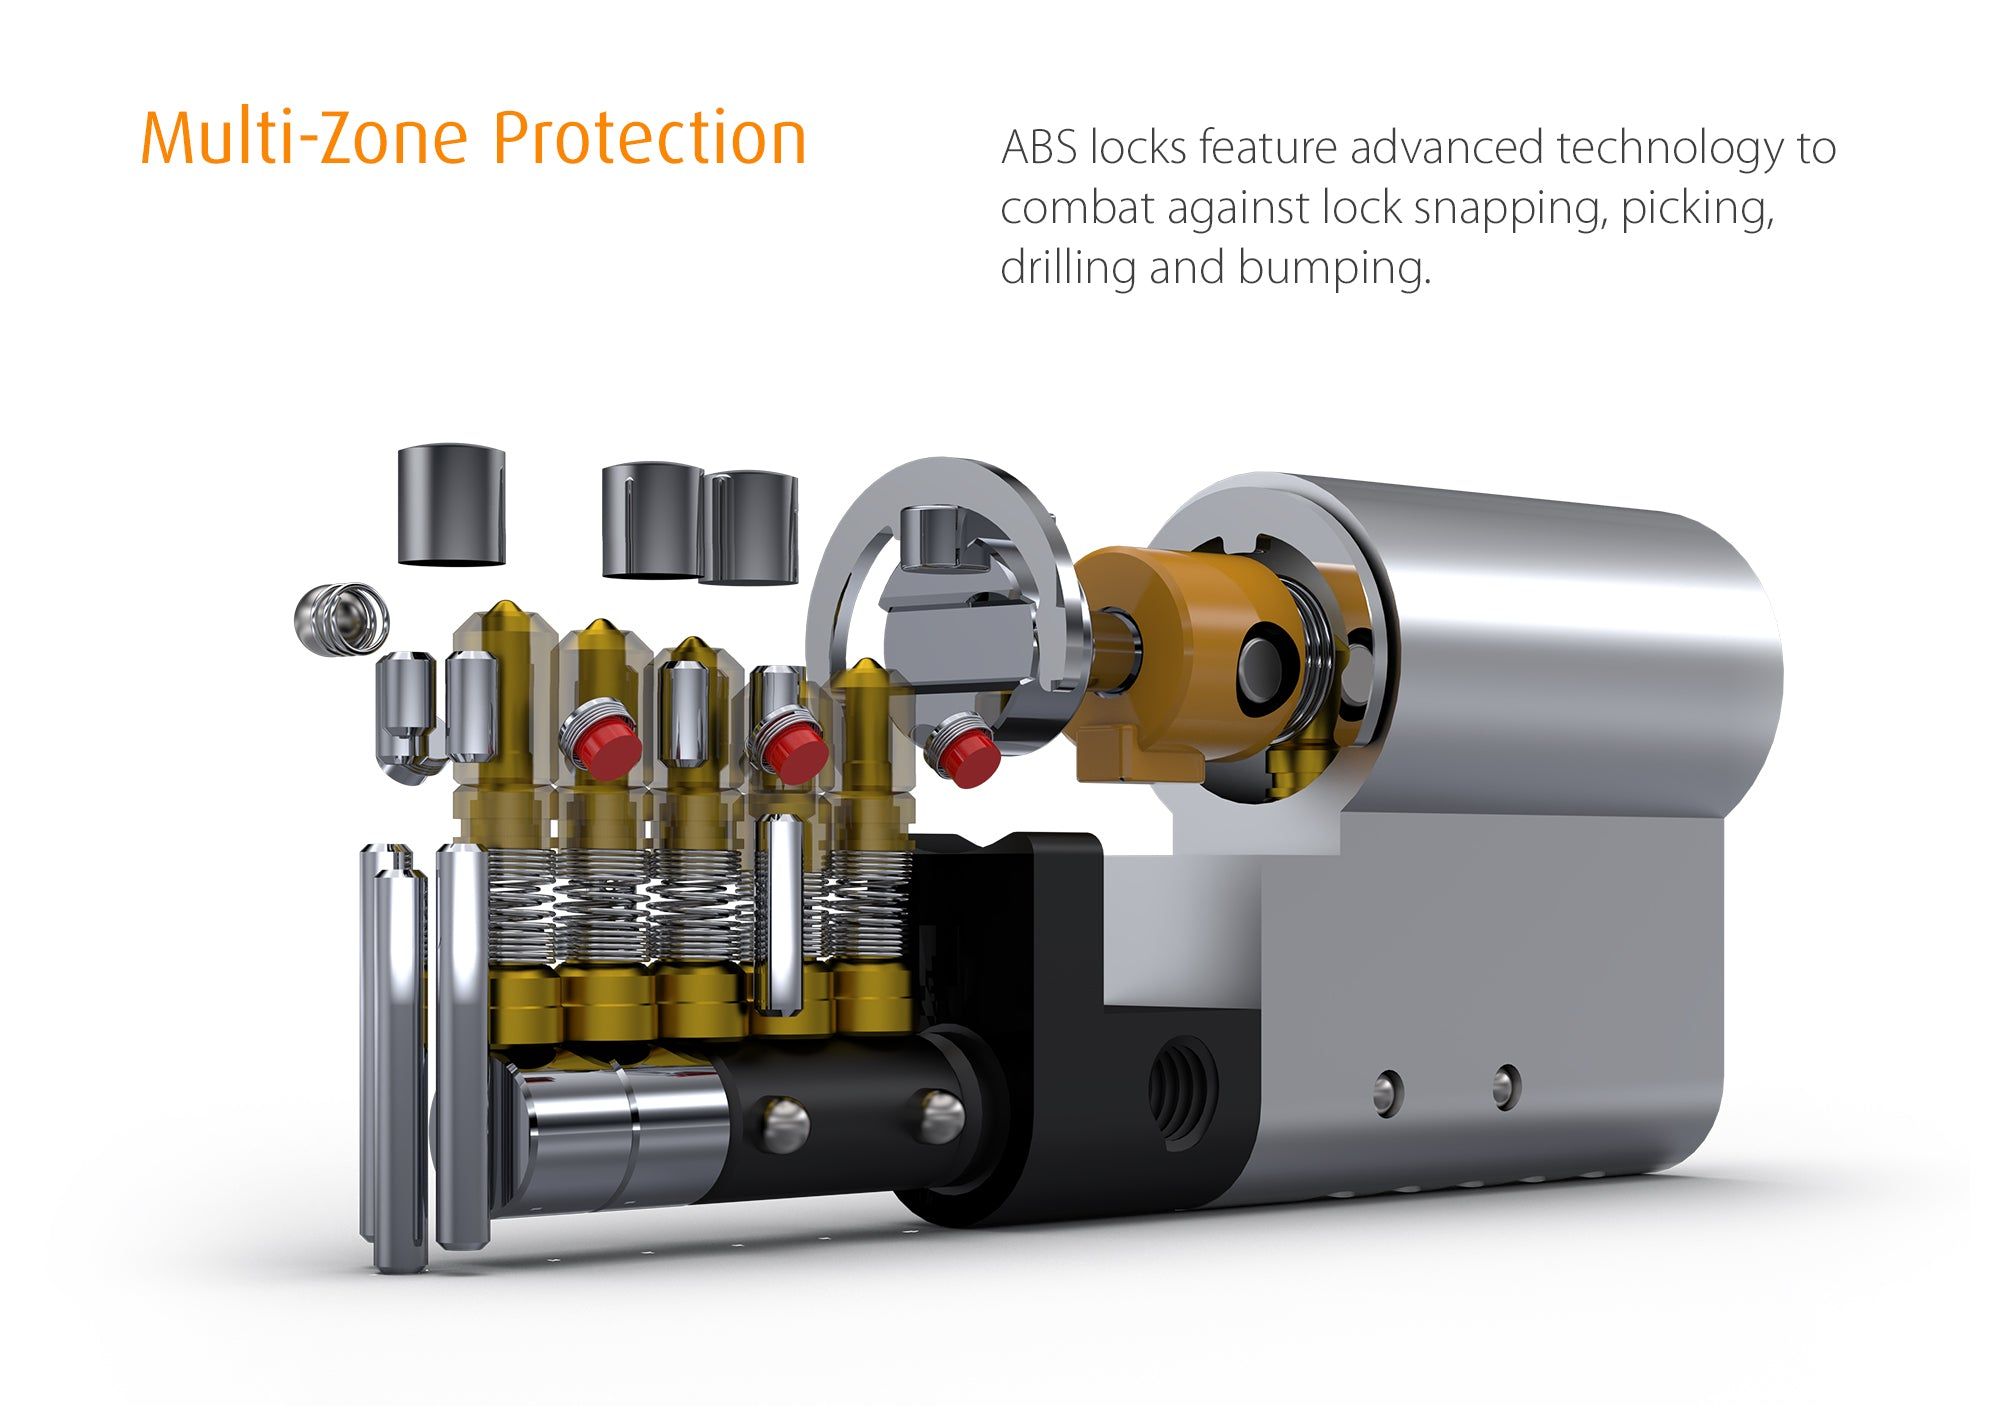 ABS locks feature multi zone protection against lock bumping, picking, drilling and snapping